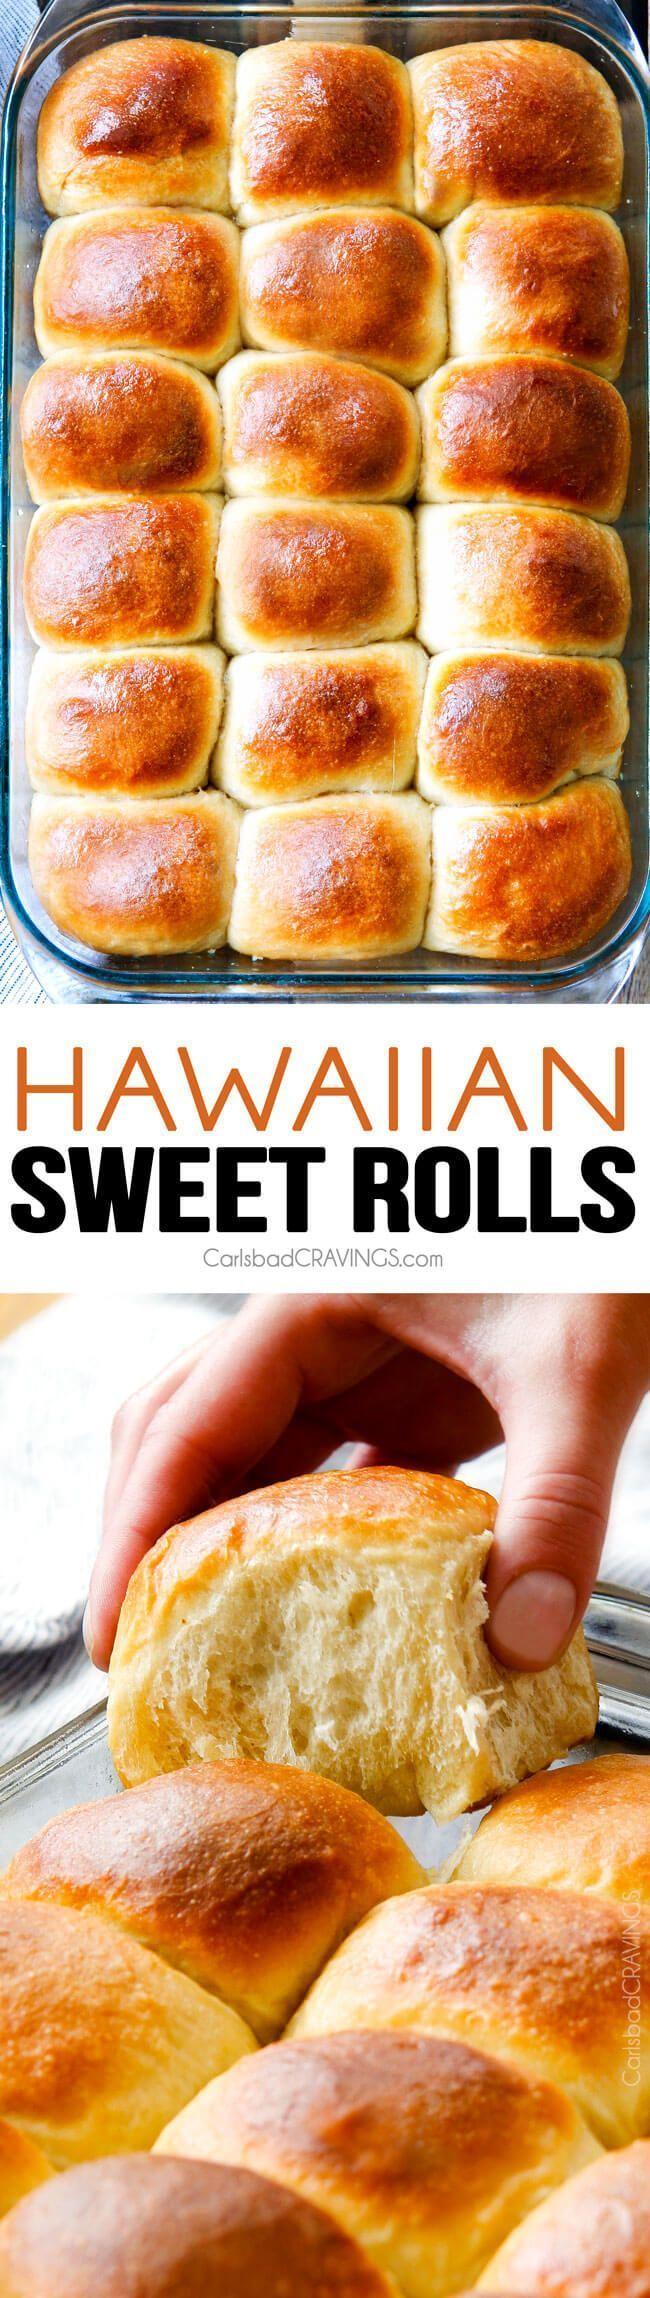 Food faith amp design thanksgiving goodies - Hawaiian Sweet Rolls